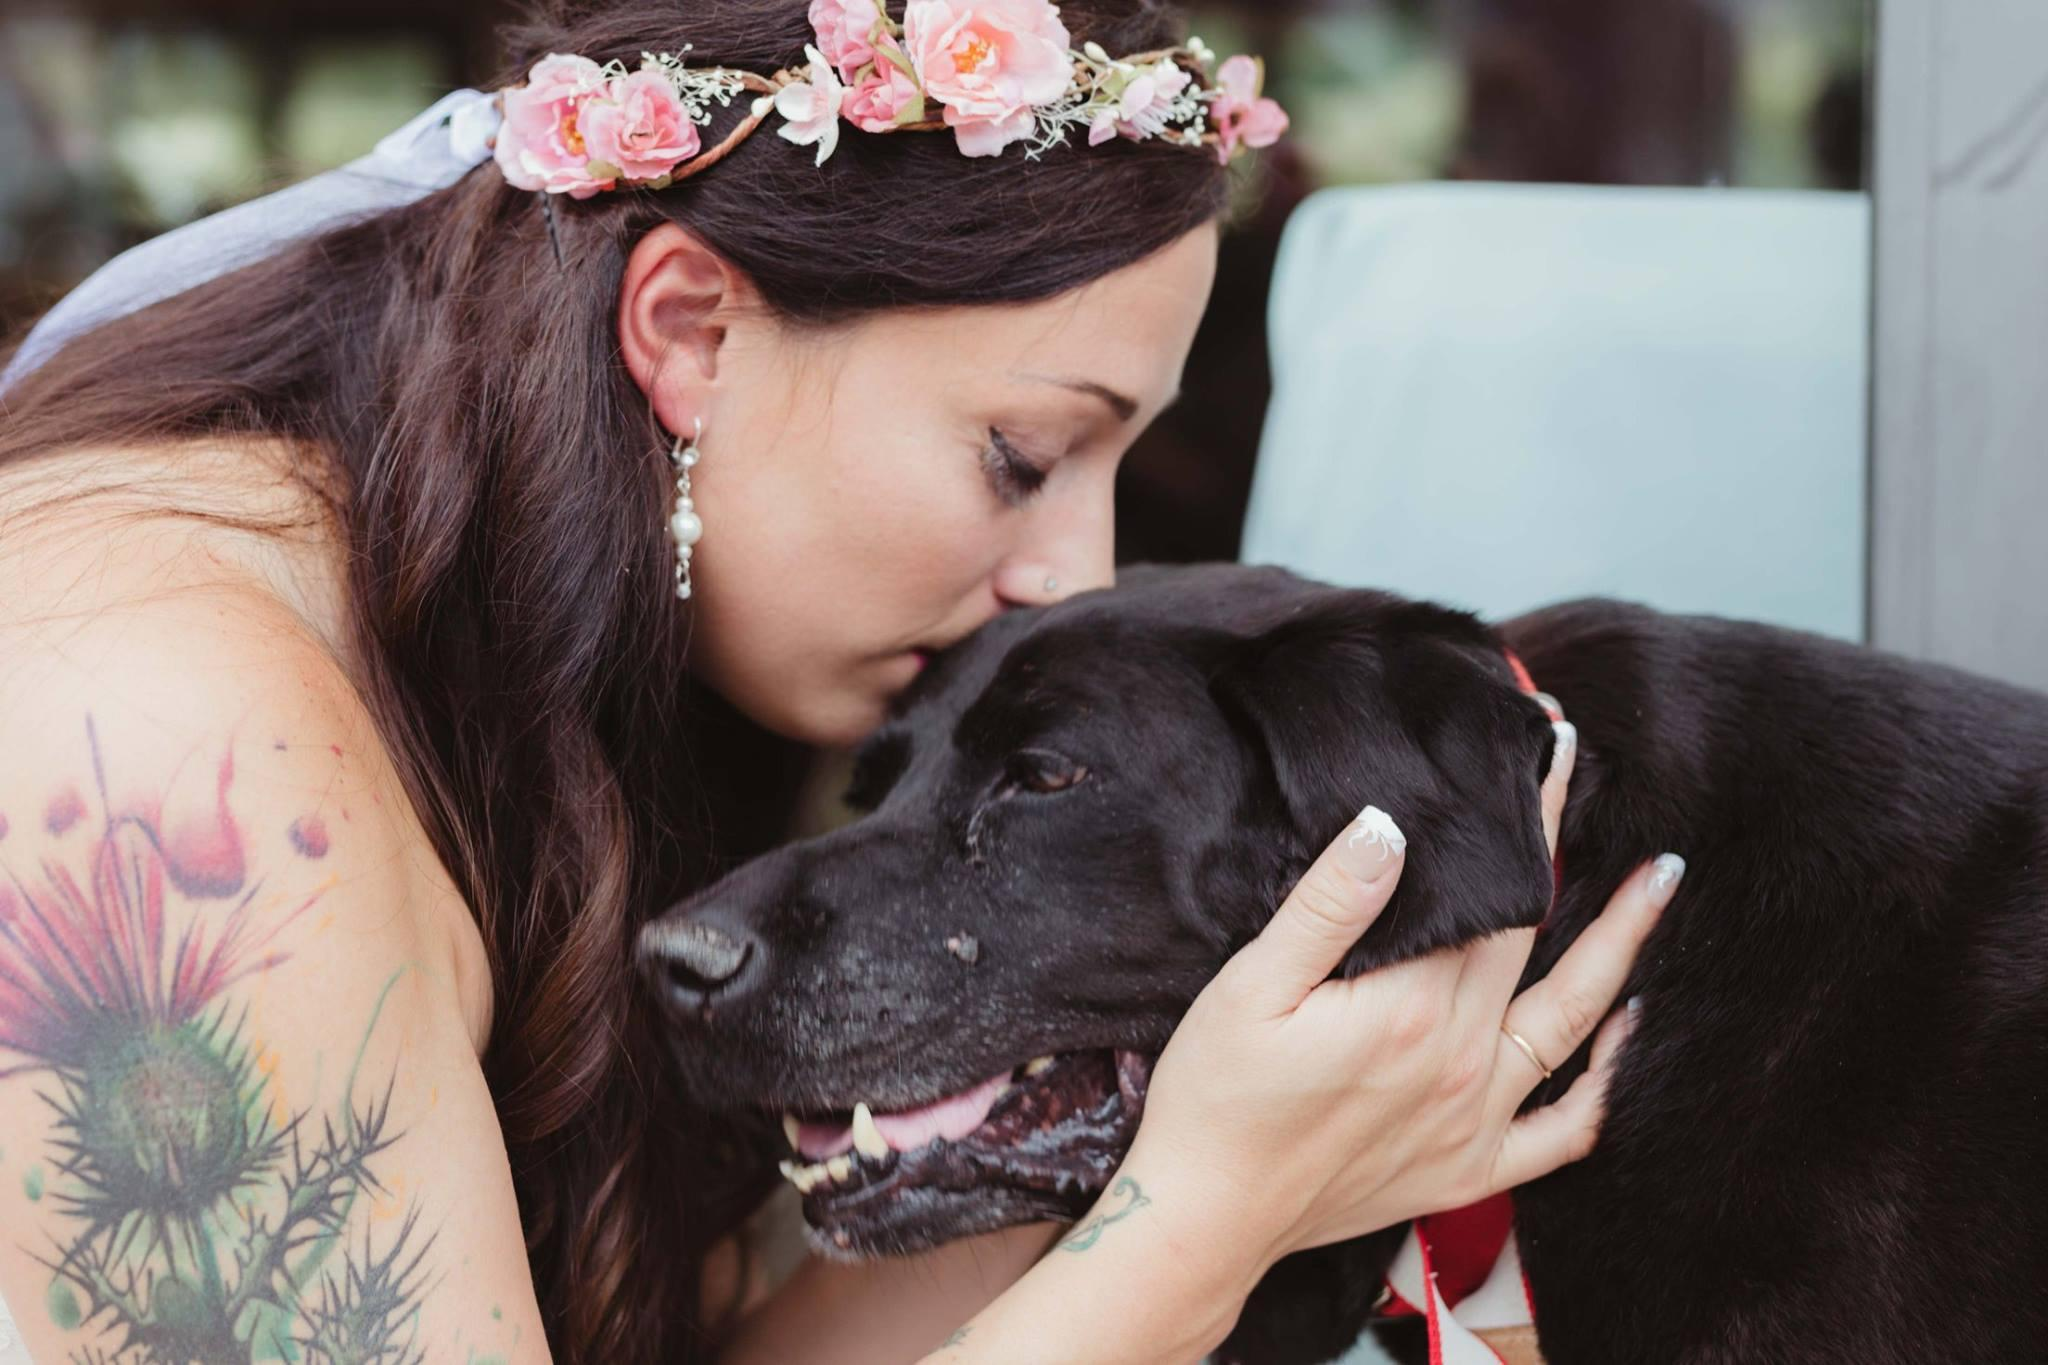 This dog lived just long enough to see his owner get married